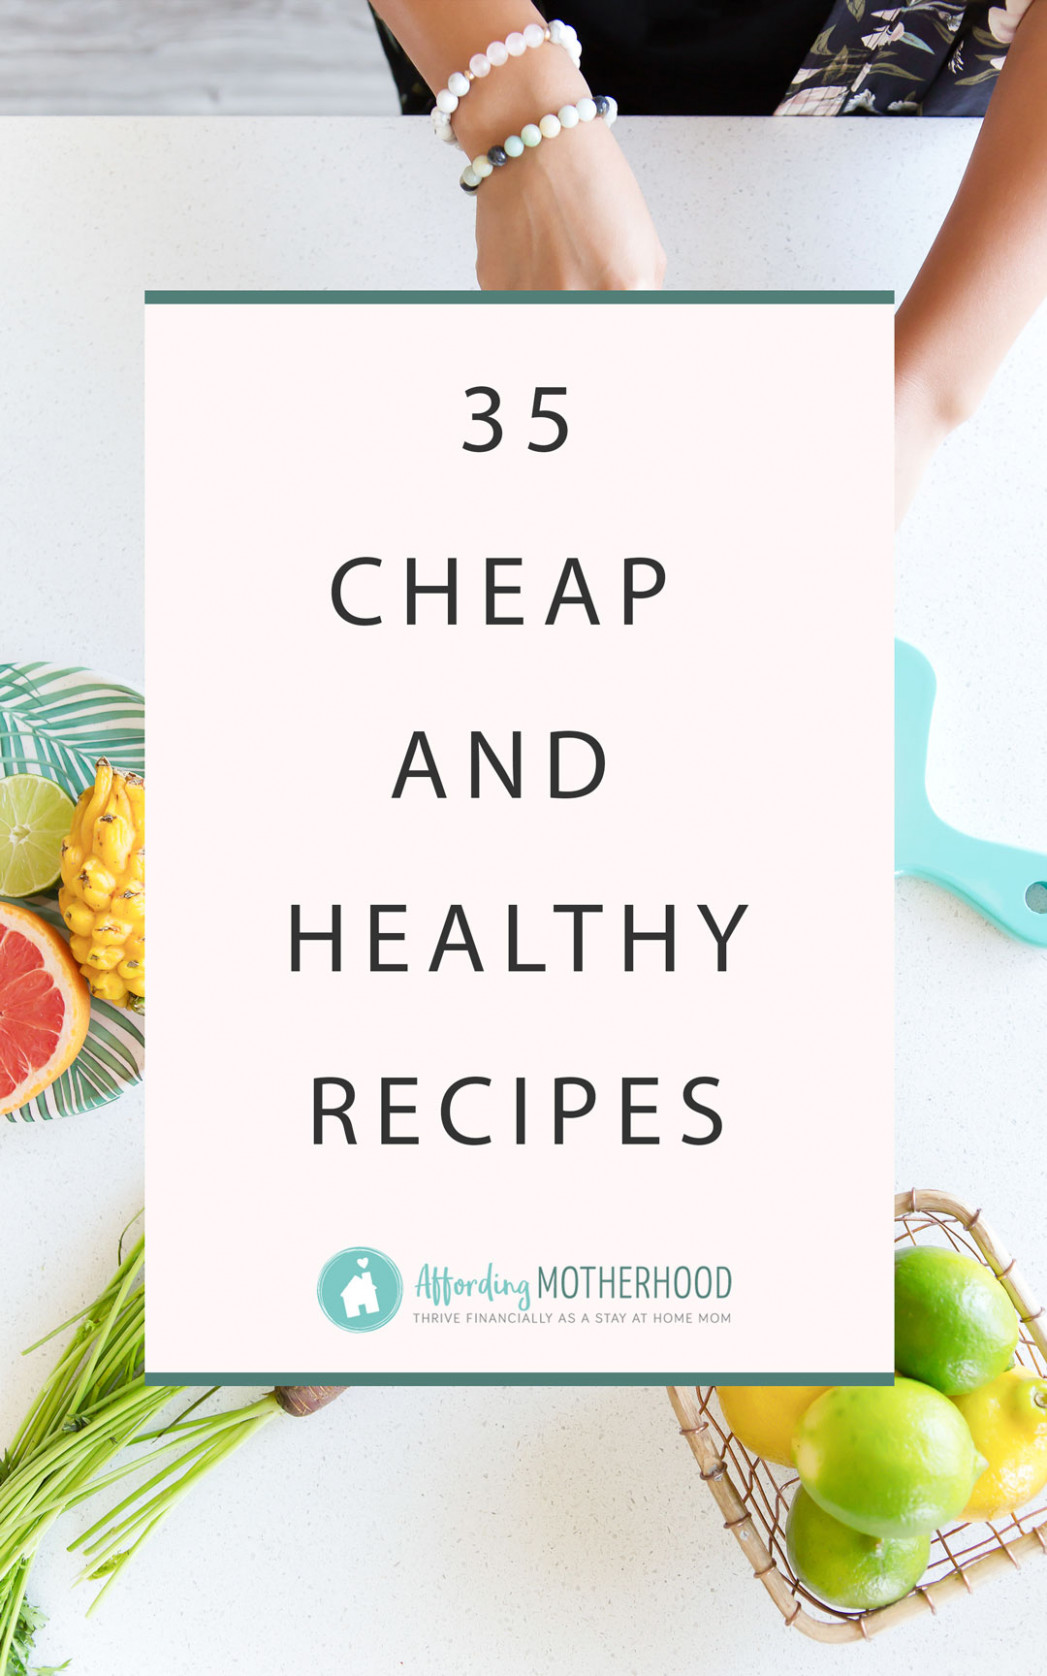 35 Cheap and Healthy Recipes - Meal Ideas on a Tight Budget - recipes low budget healthy